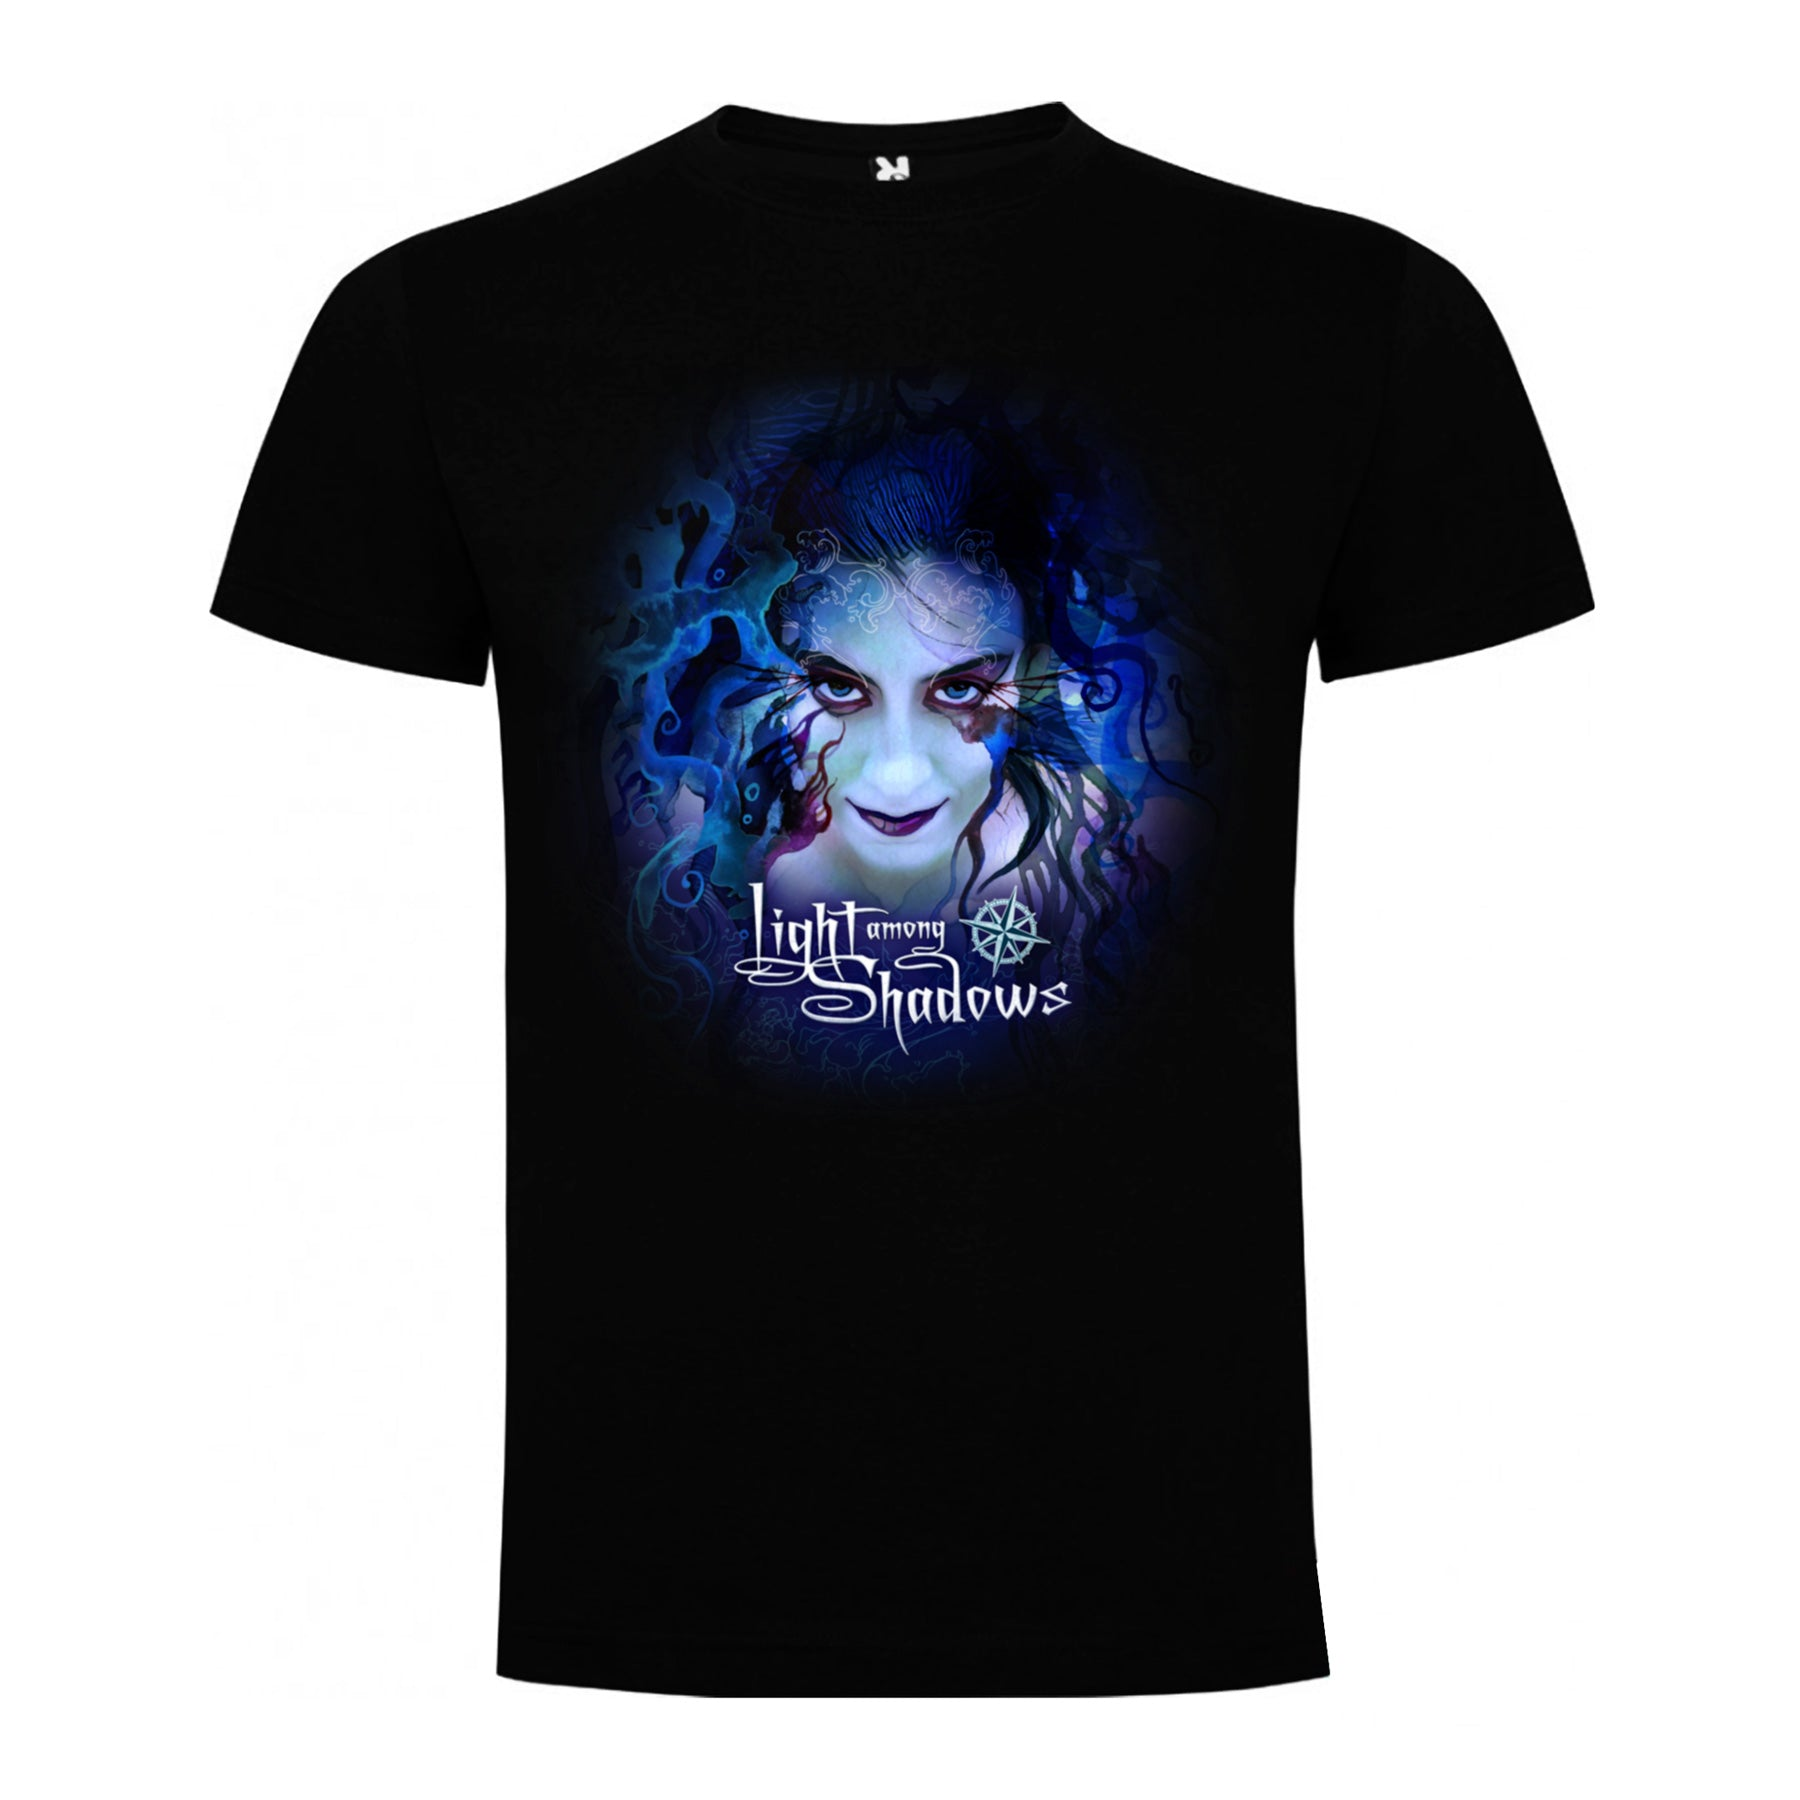 Light Among Shadows - Camiseta Girl Chico - Merchanfy Imprime tus camisetas